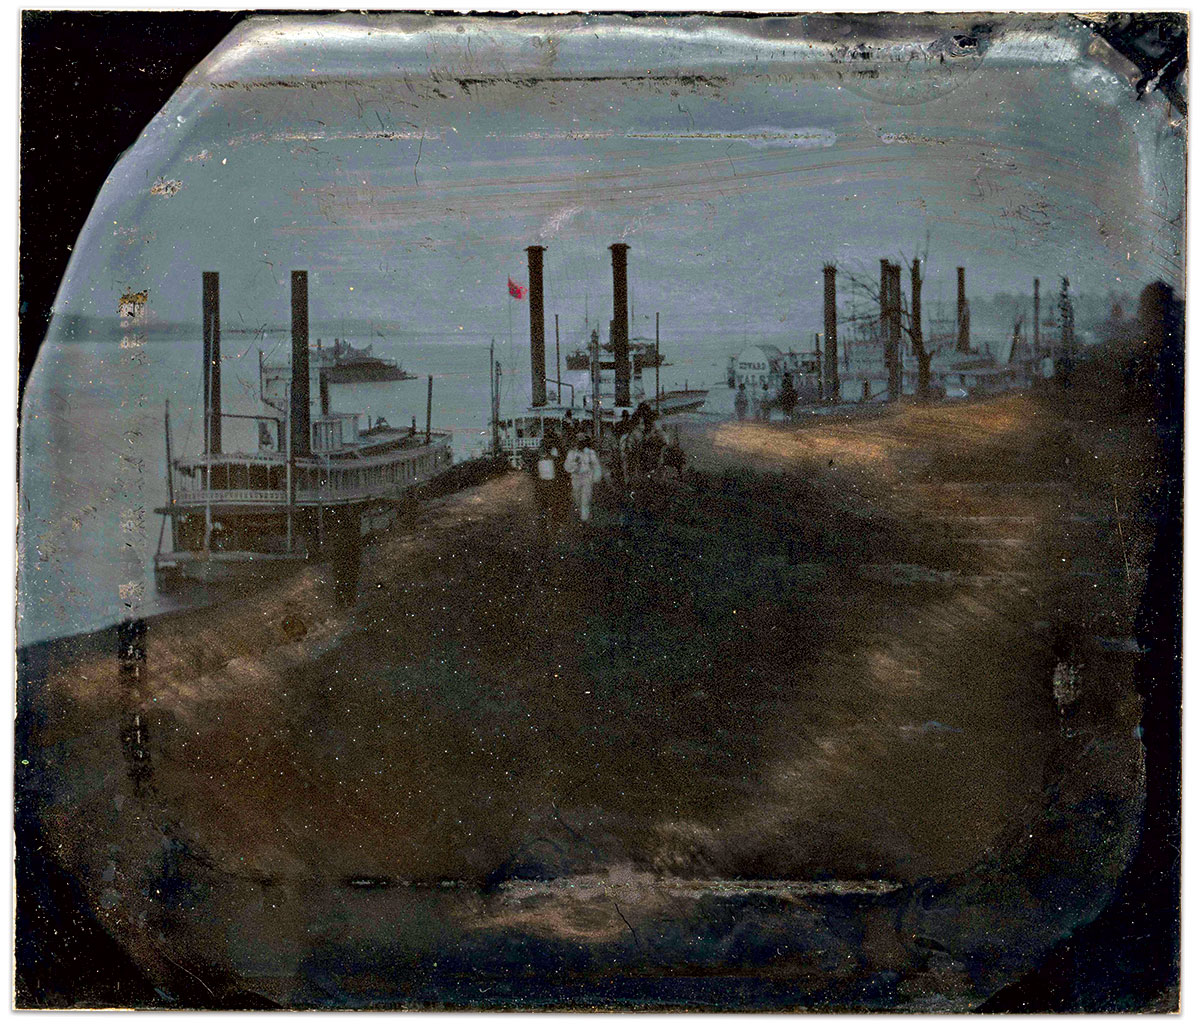 The Edward Walsh appears moored at the far end of this row of steamers. An unidentified side-wheel gunboat and an Eads gunboat, so named for wealthy St. Louis industrialist James Buchanan Eads, lie just off shore. Several laden wagons approach the camera. Sixth-plate tintype (reversed) possibly by Andrew D. Lytle of Baton Rouge, La.